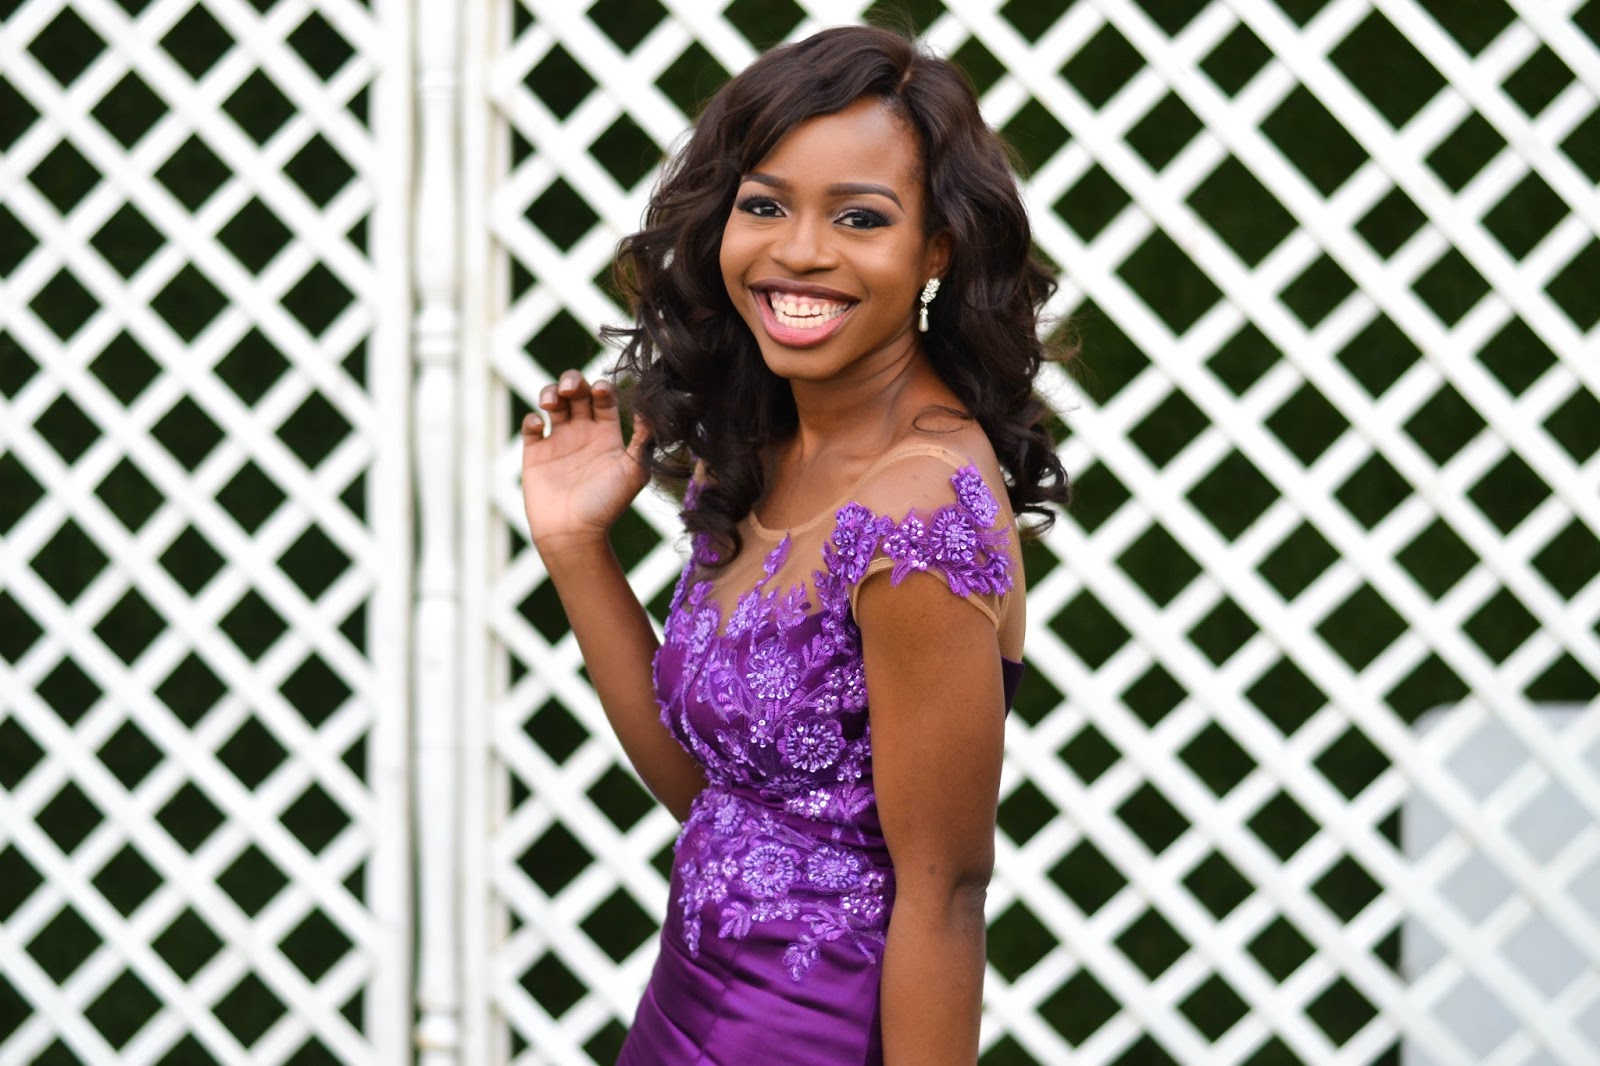 African Bridesmaid smiling in purple dress